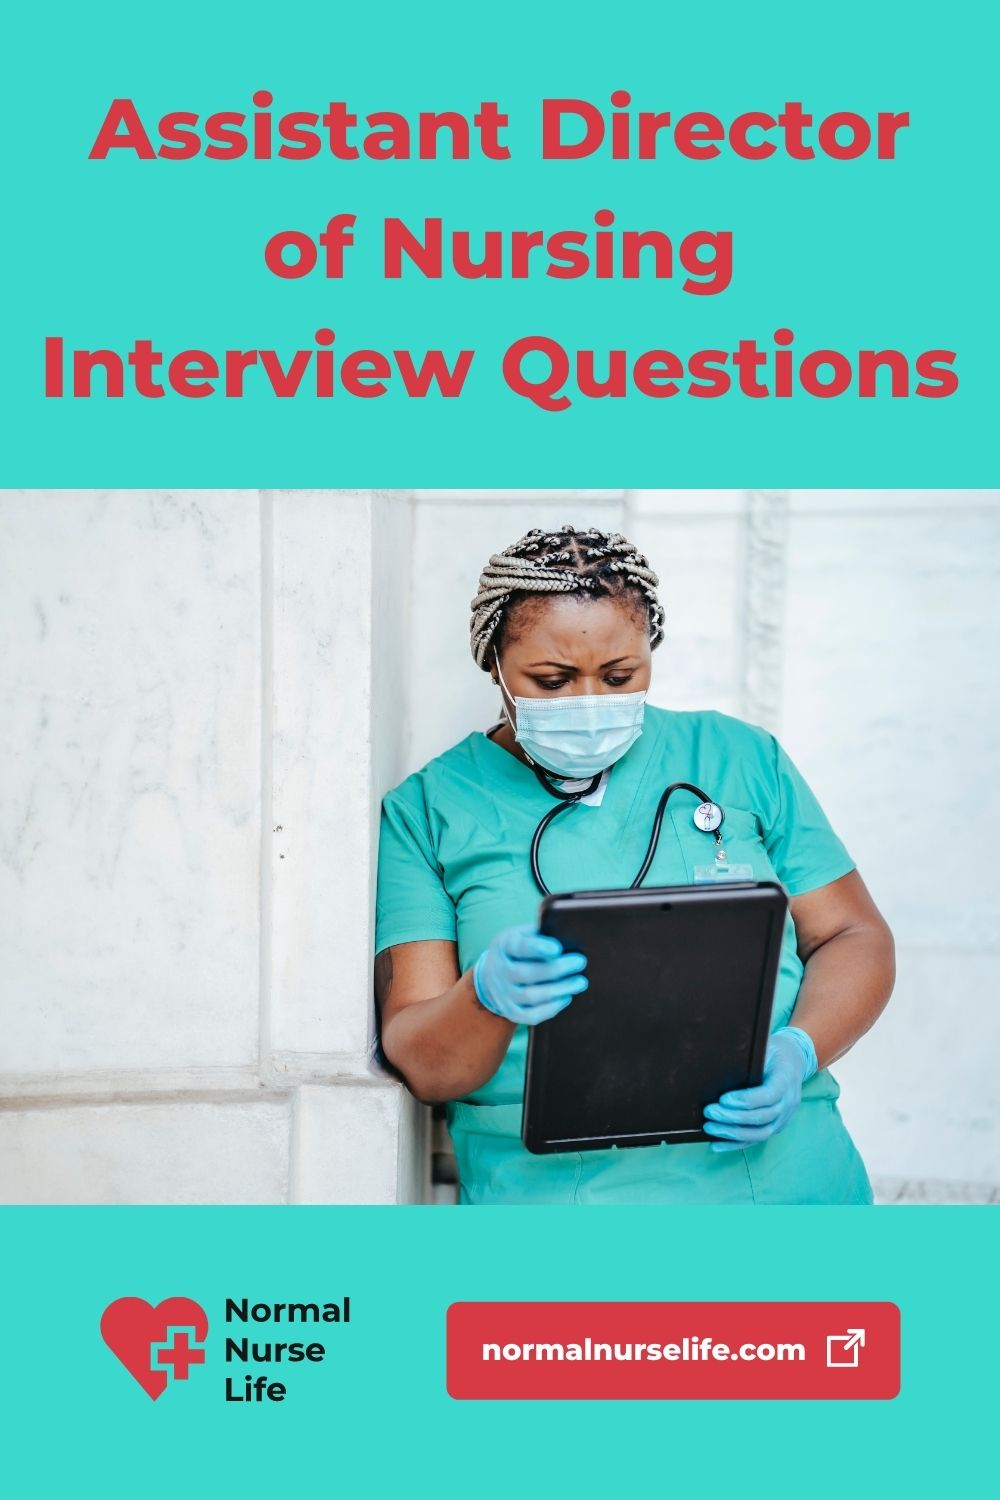 Assistant Director of Nursing interview questions and answers